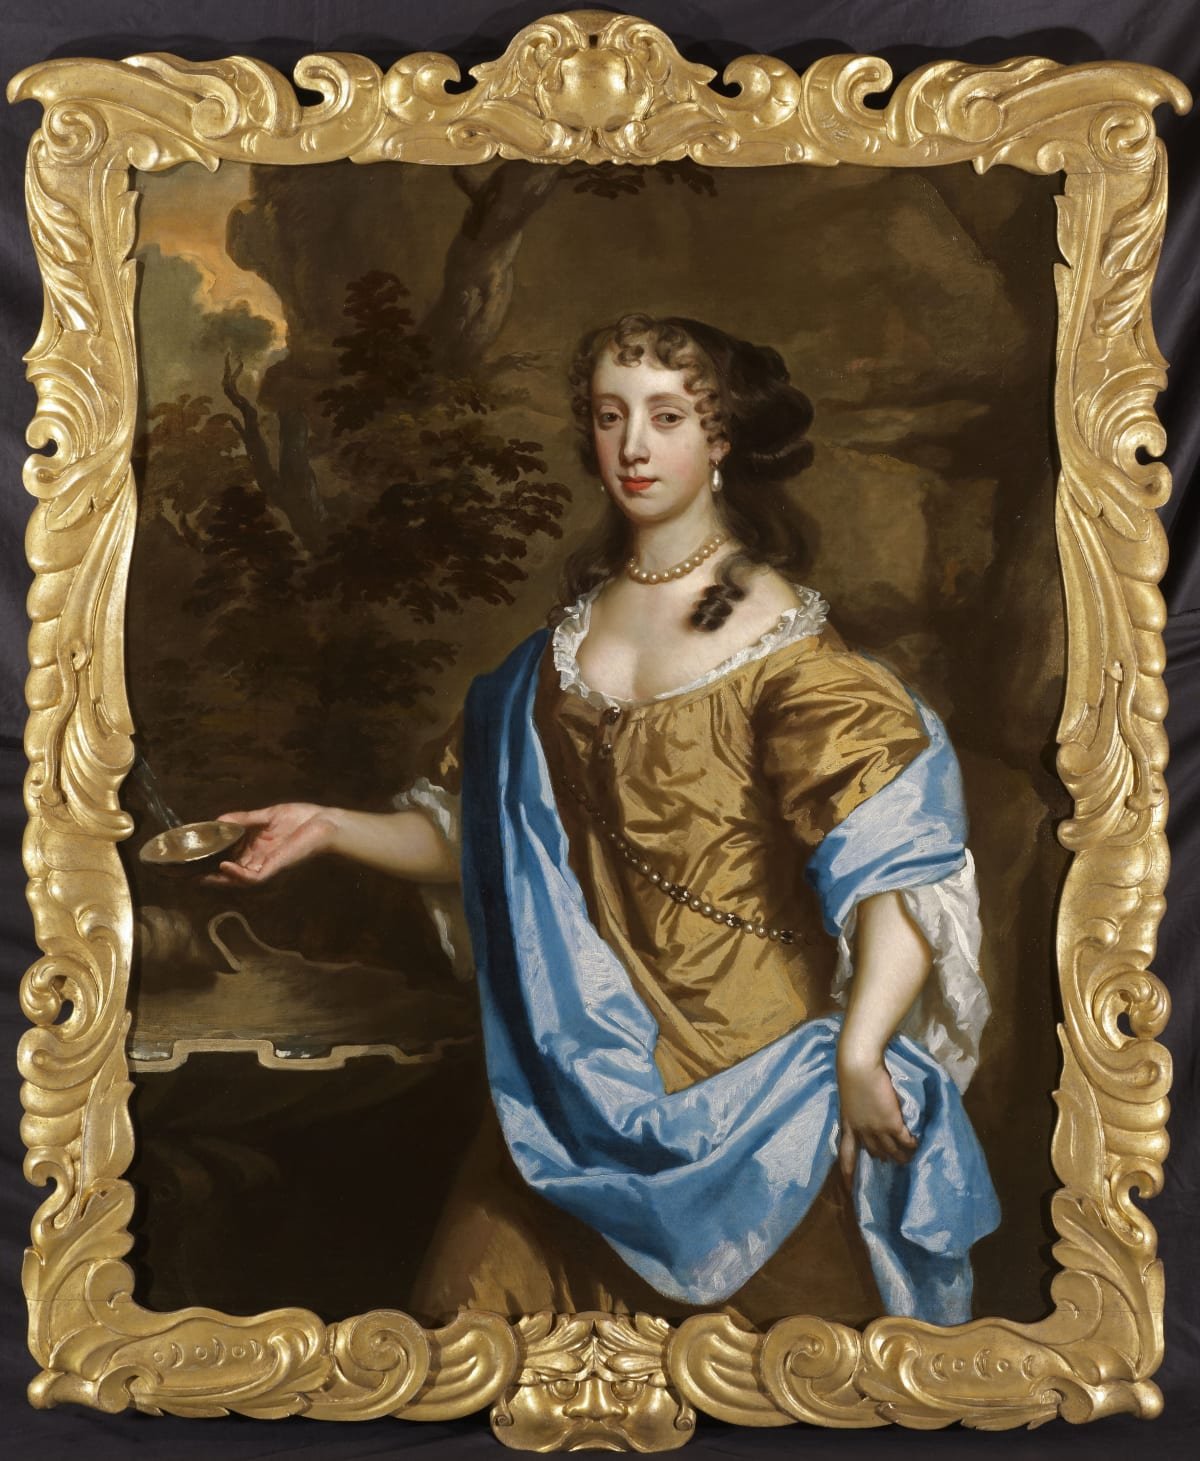 Sir Peter Lely (1618 – 1680) An Unknown Noblewoman, circa 1660 - 1665 Oil on canvas 50 x 40 in. (127 x 101.6 cm.)